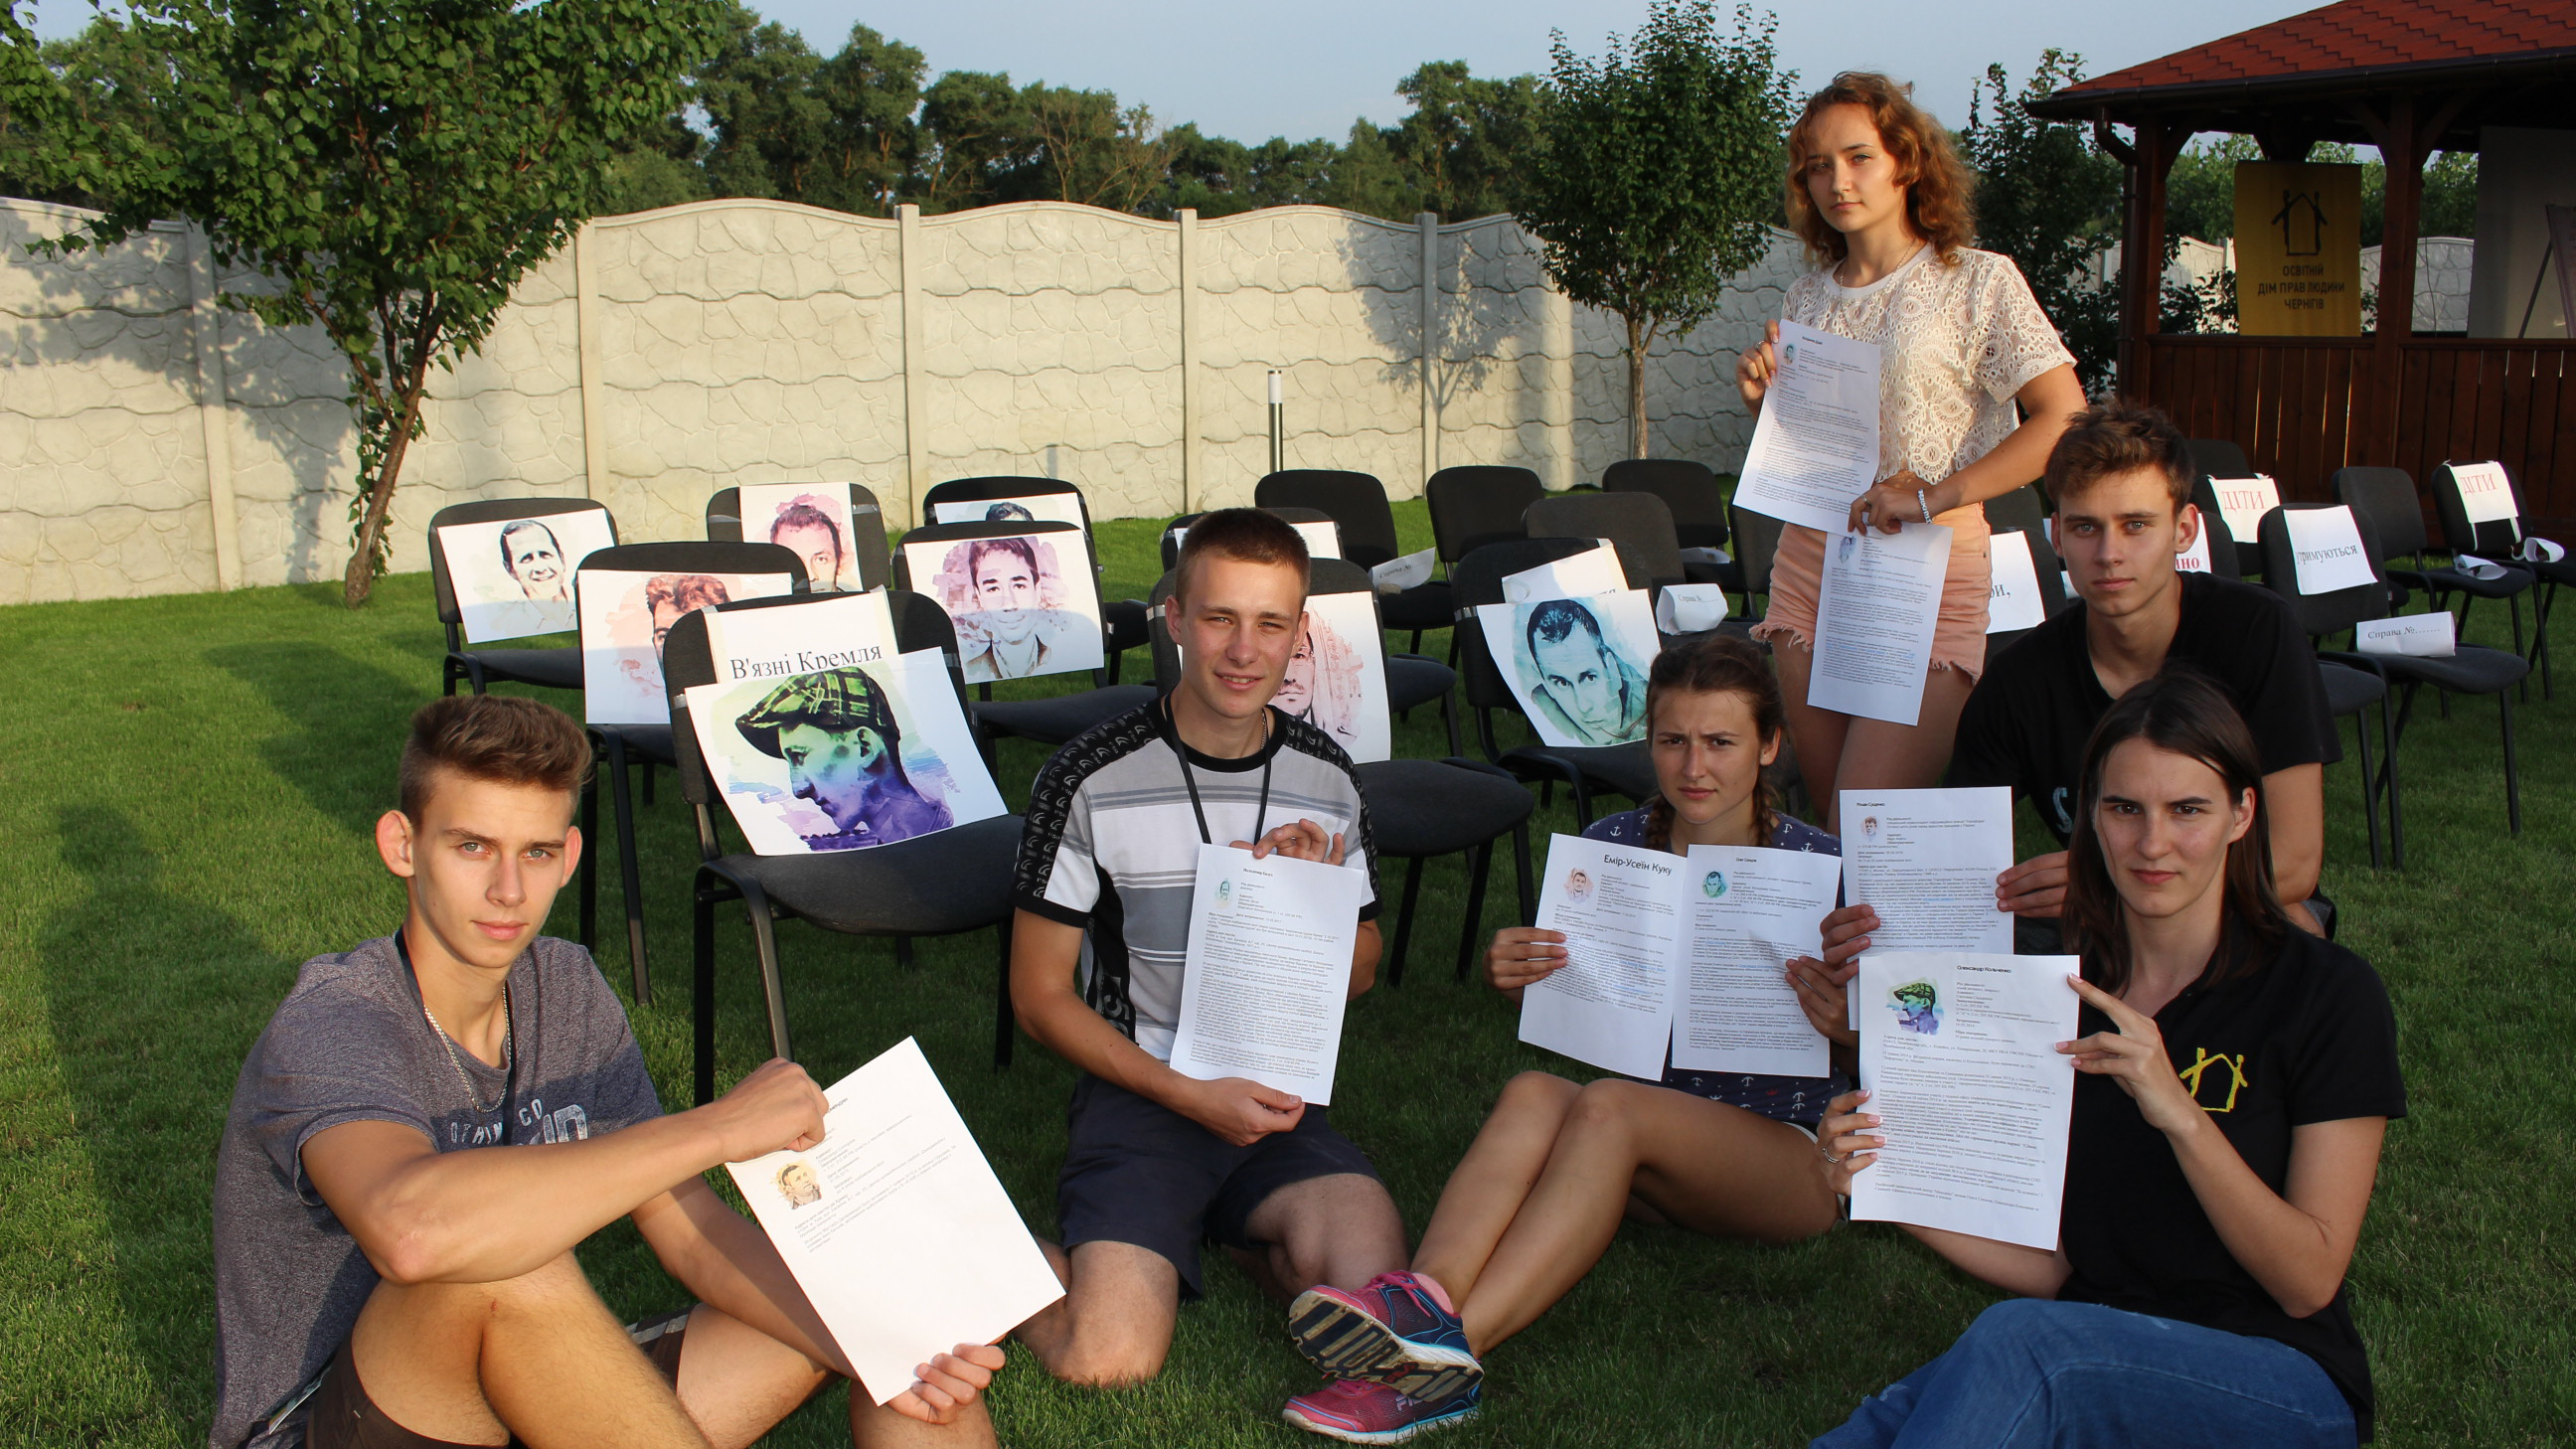 Participants of the festival, shown here with portraits and information about imprisoned human rights defenders.